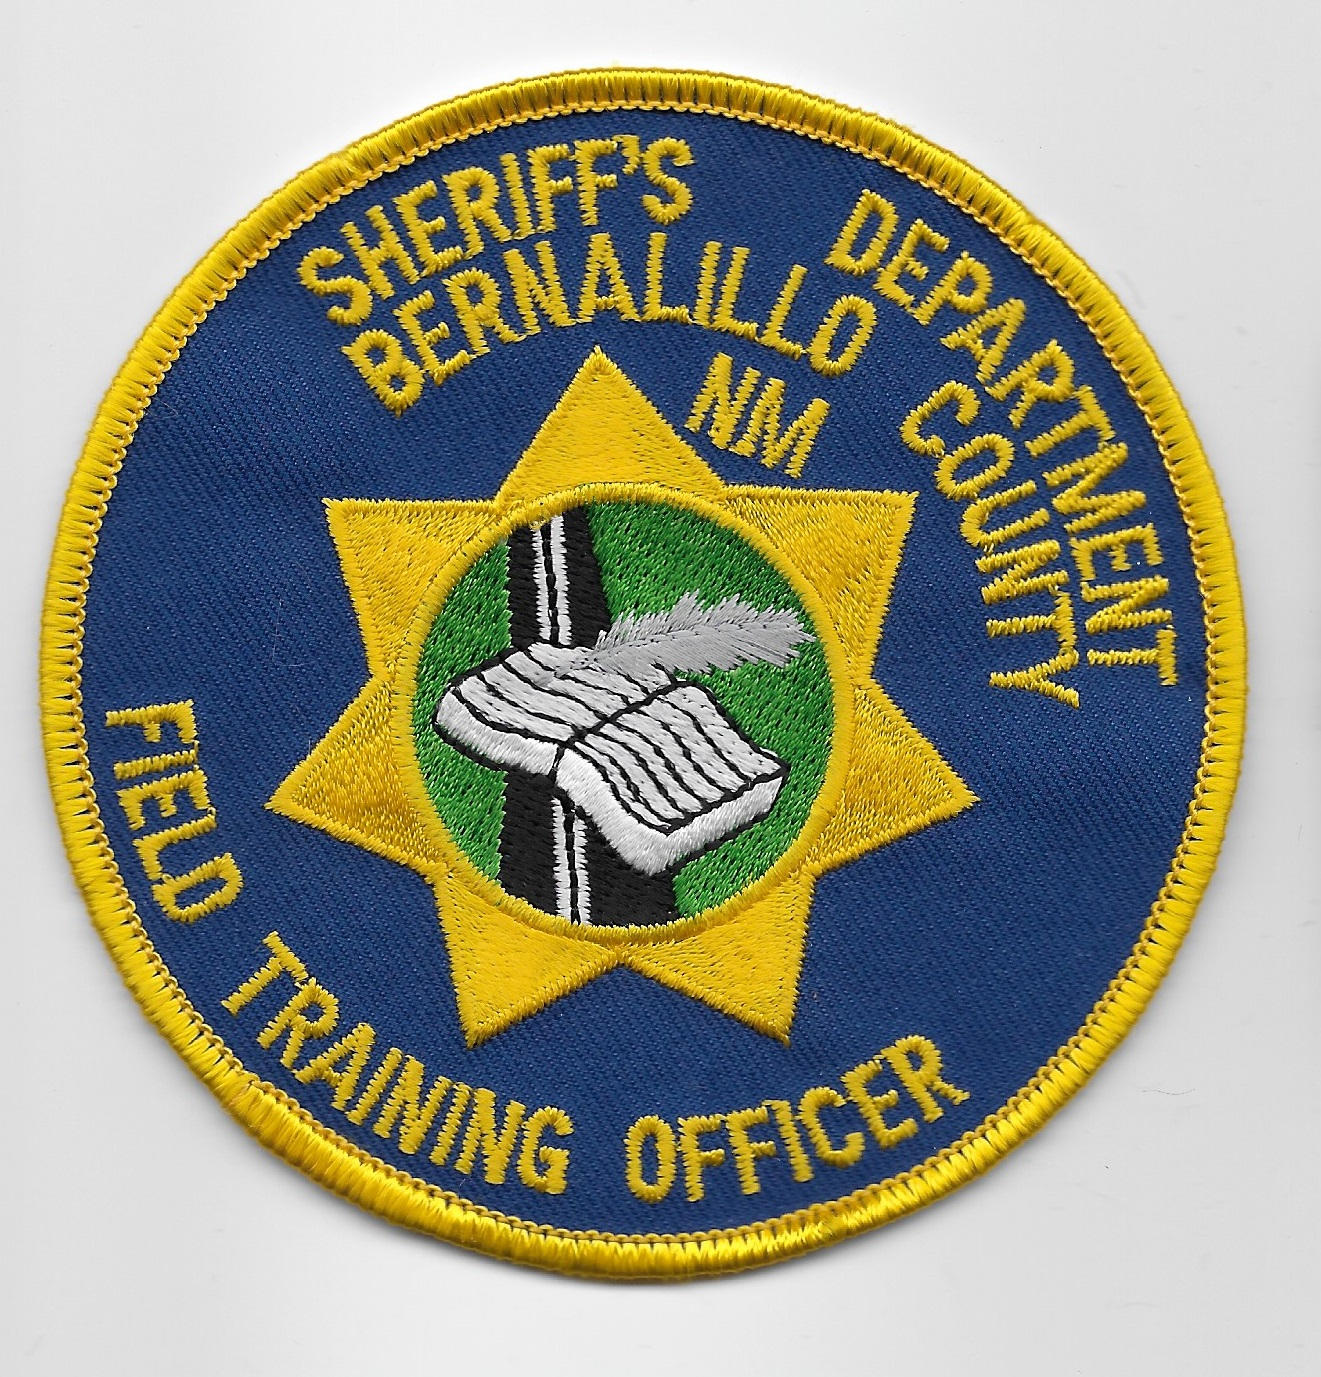 Bernallillo County Sheriff Field Training Officer NM